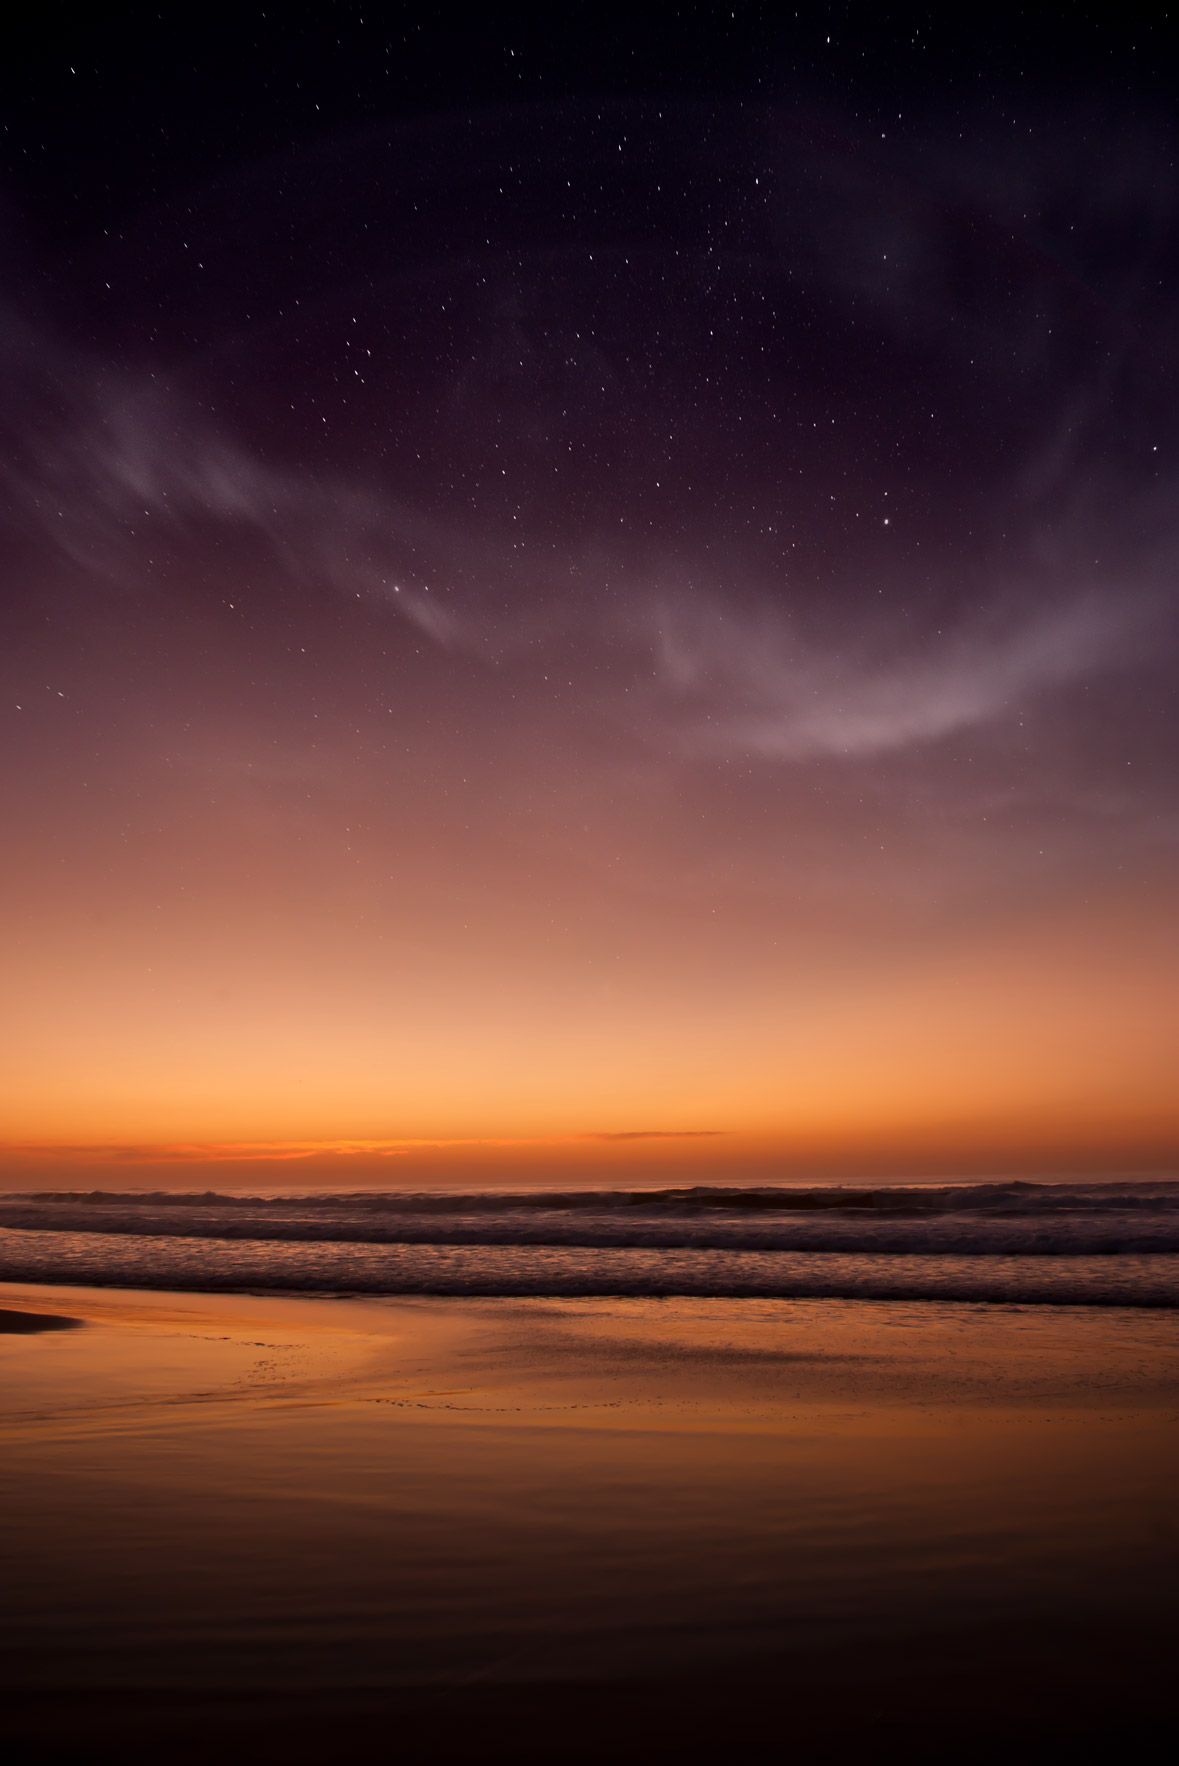 The sunset afterglow as the stars come out above the Pacific Ocean at landscape photographer, scenic California, California landscape, fine art photography, Asilomar State Beach, Pacific Grove, Asilomar State Beach, Pacific Grove